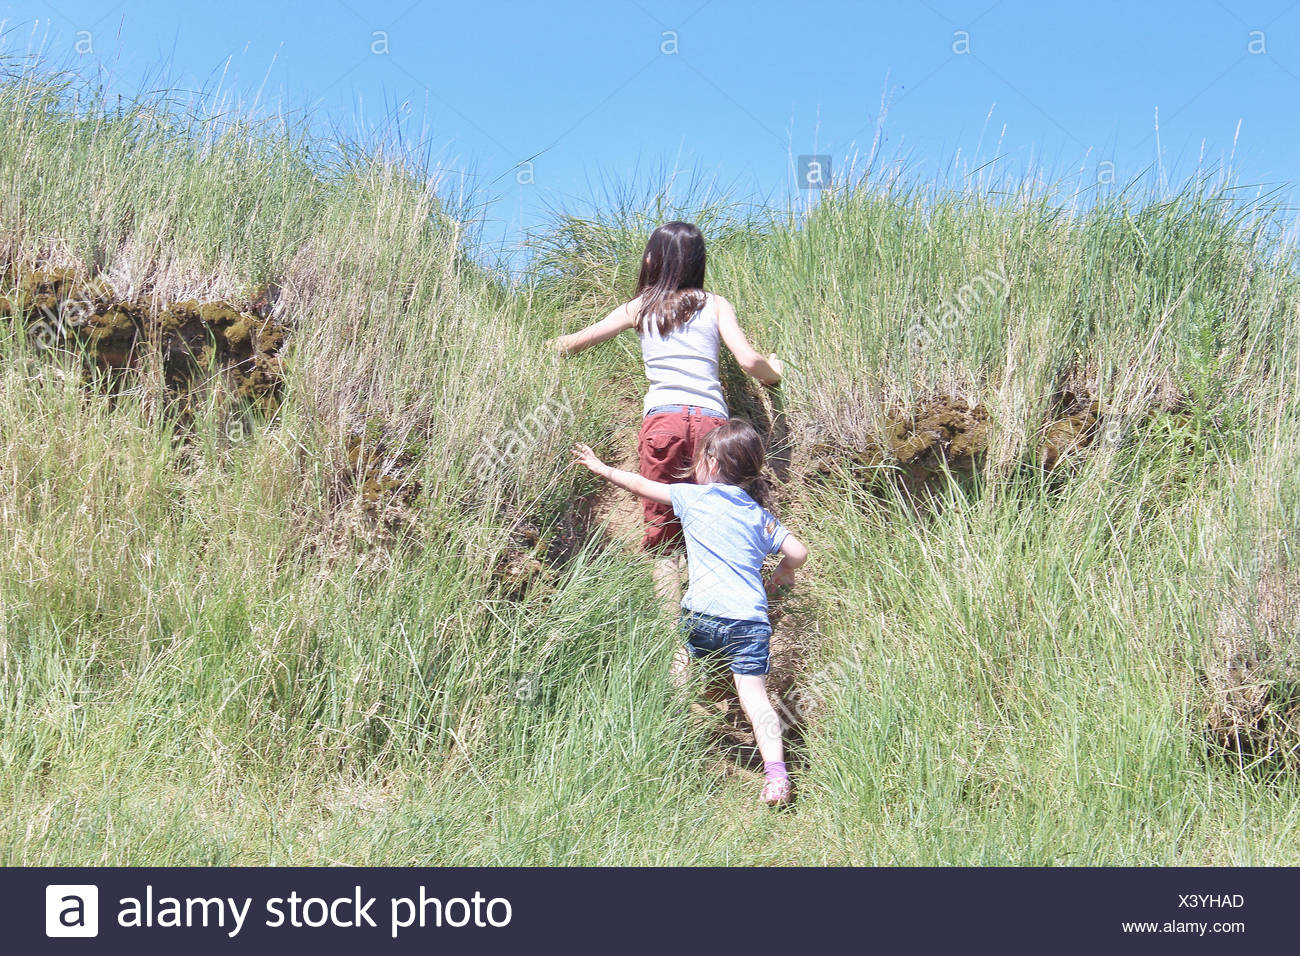 Rear view of two girls running up a hill - Stock Image